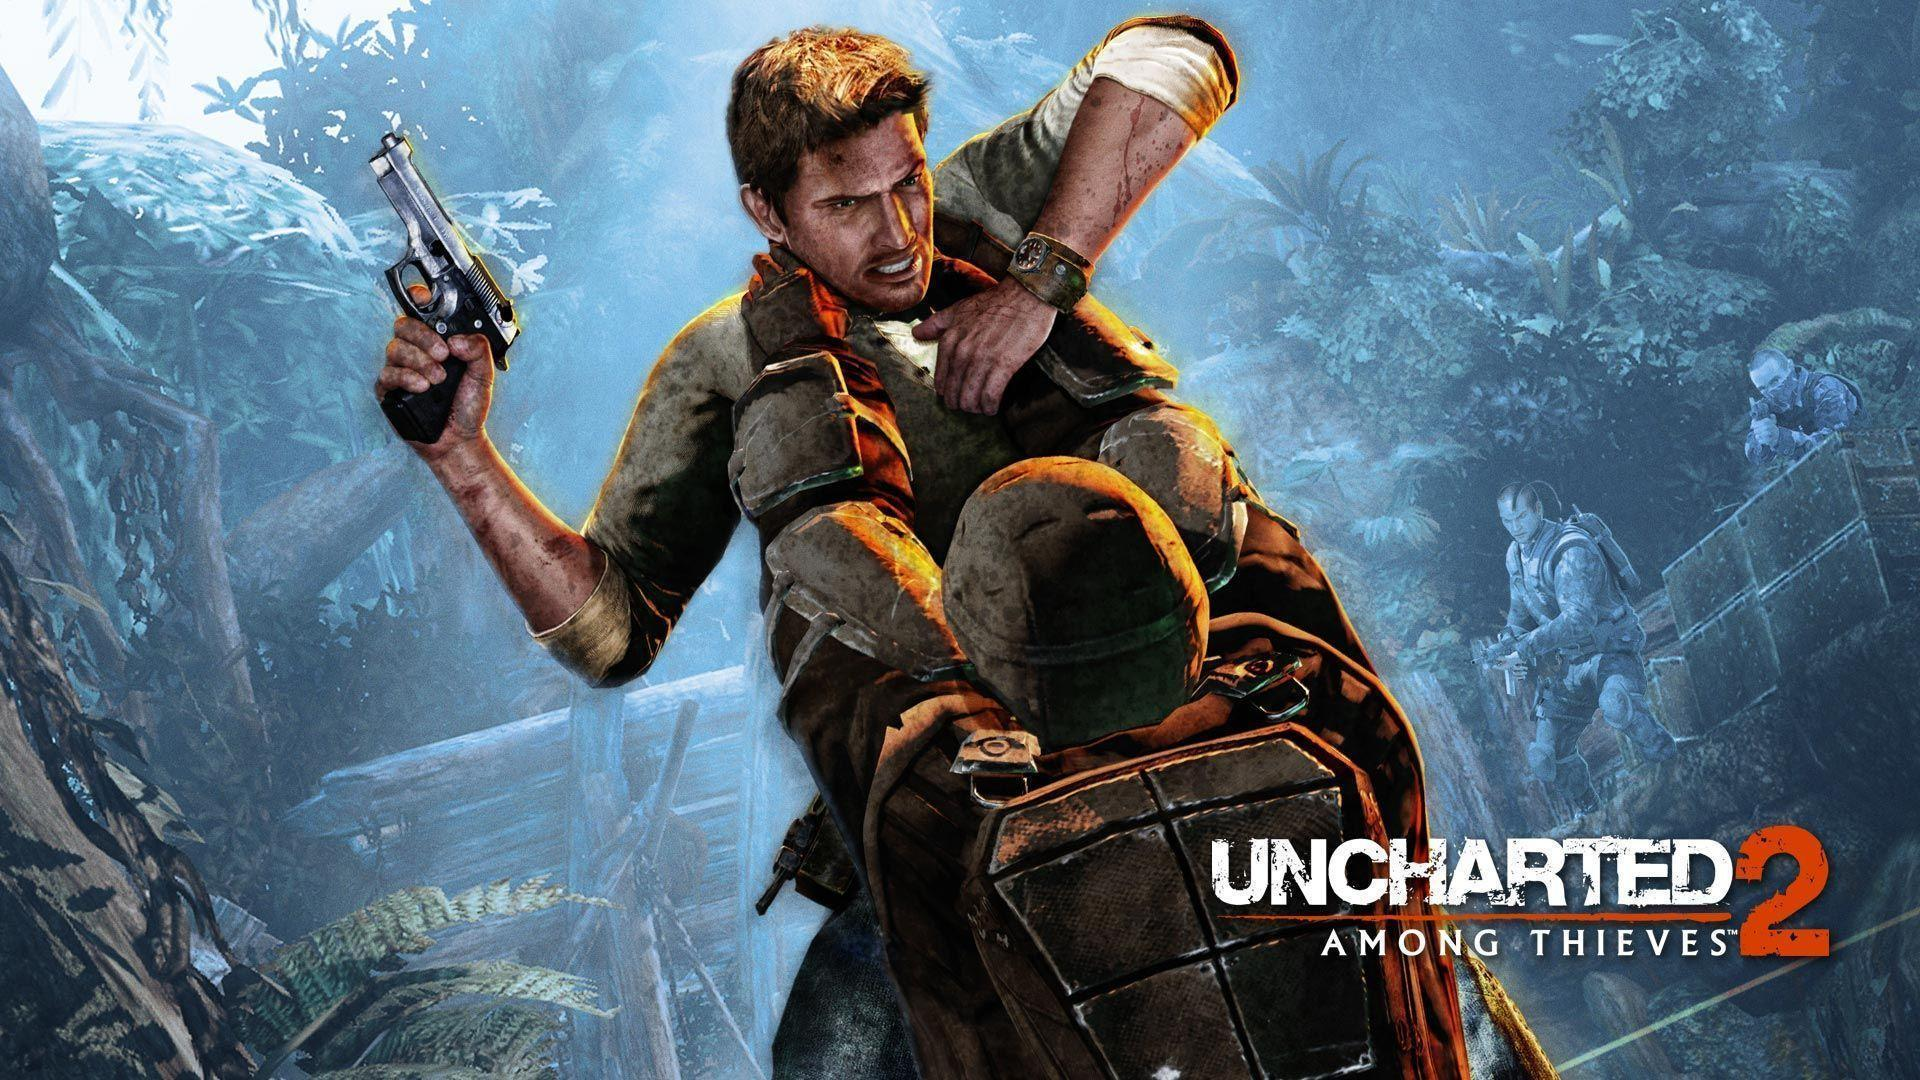 Uncharted 2 Among Thieves Wallpapers Wallpaper Cave